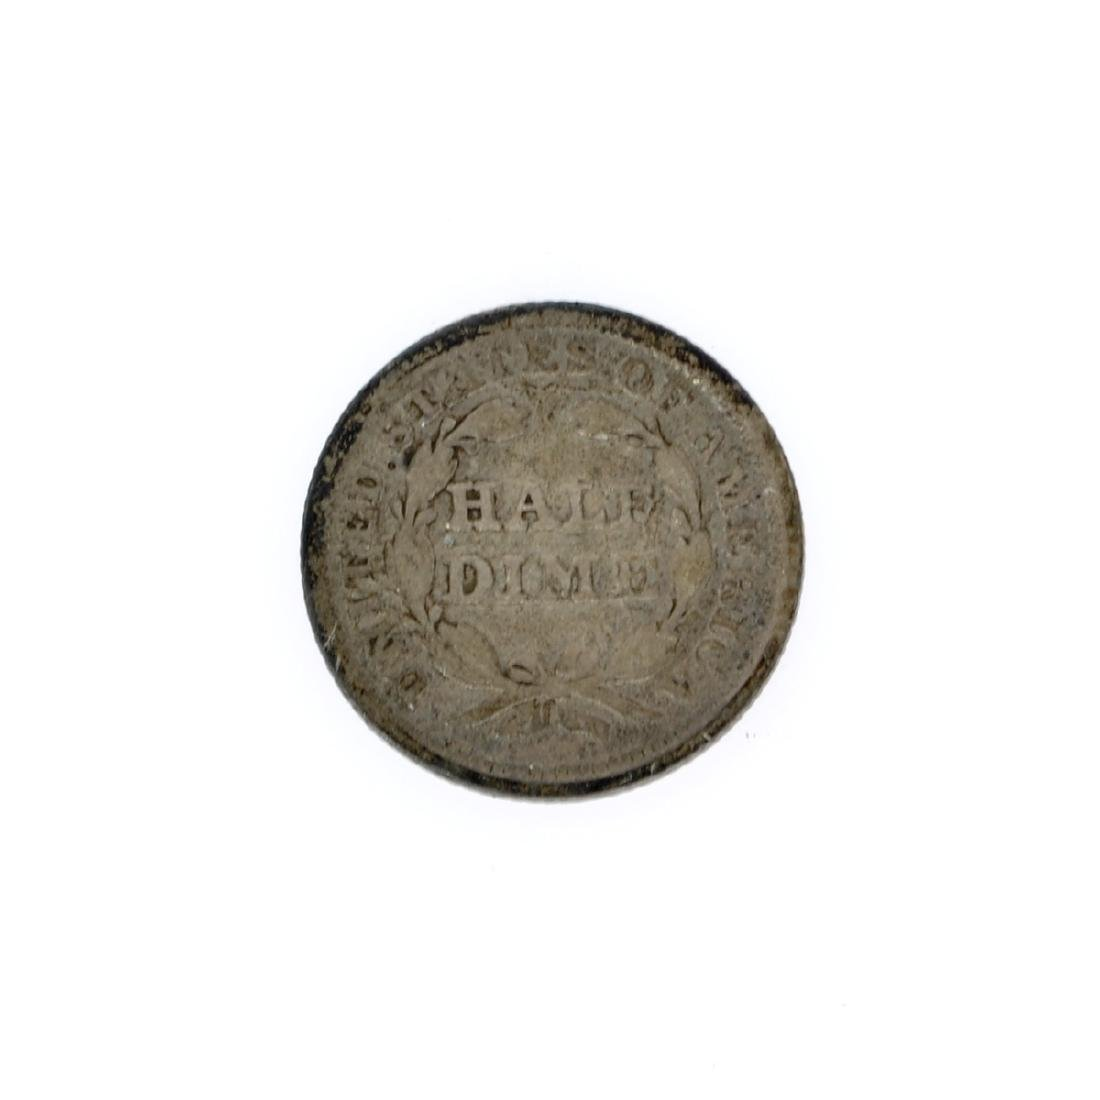 Rare 1853 Arrows At Date Liberty Seated Half Dime Coin - 2